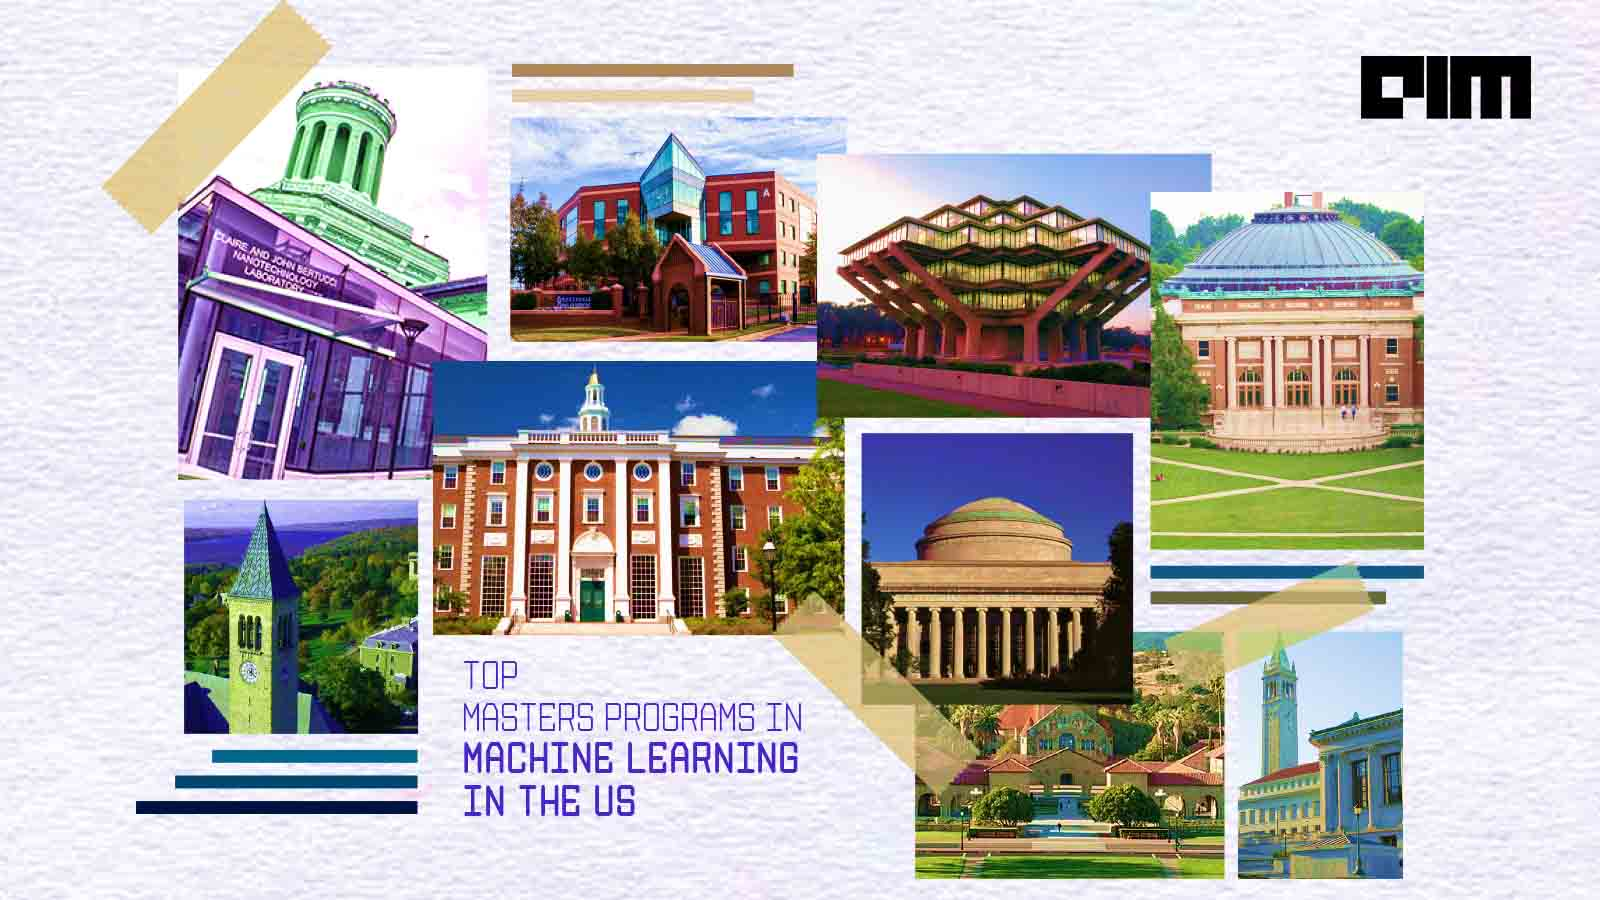 Top Master's Programs In Machine Learning In The US